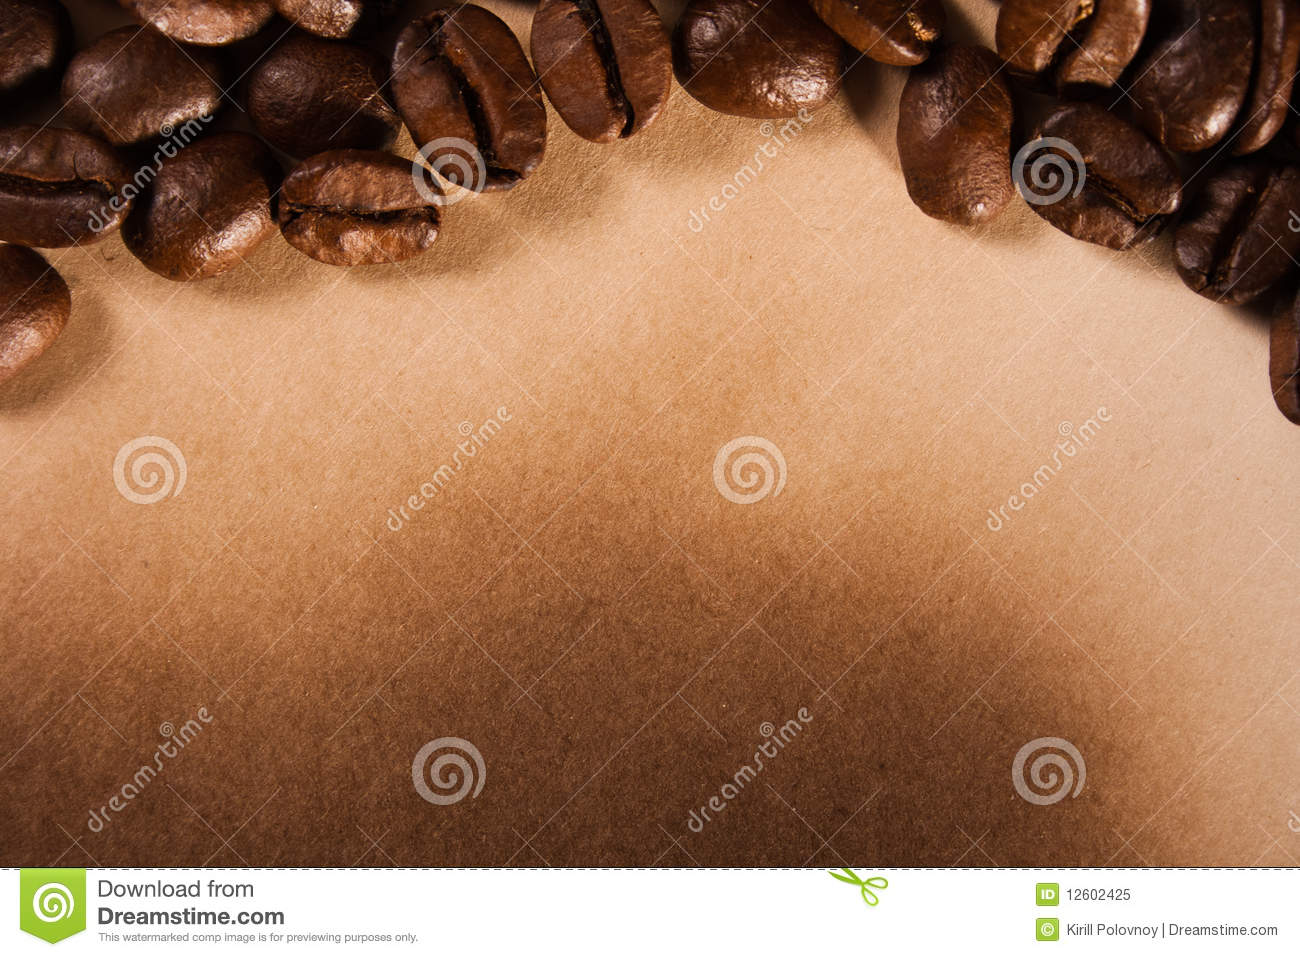 how to tell if coffee beans are burnt